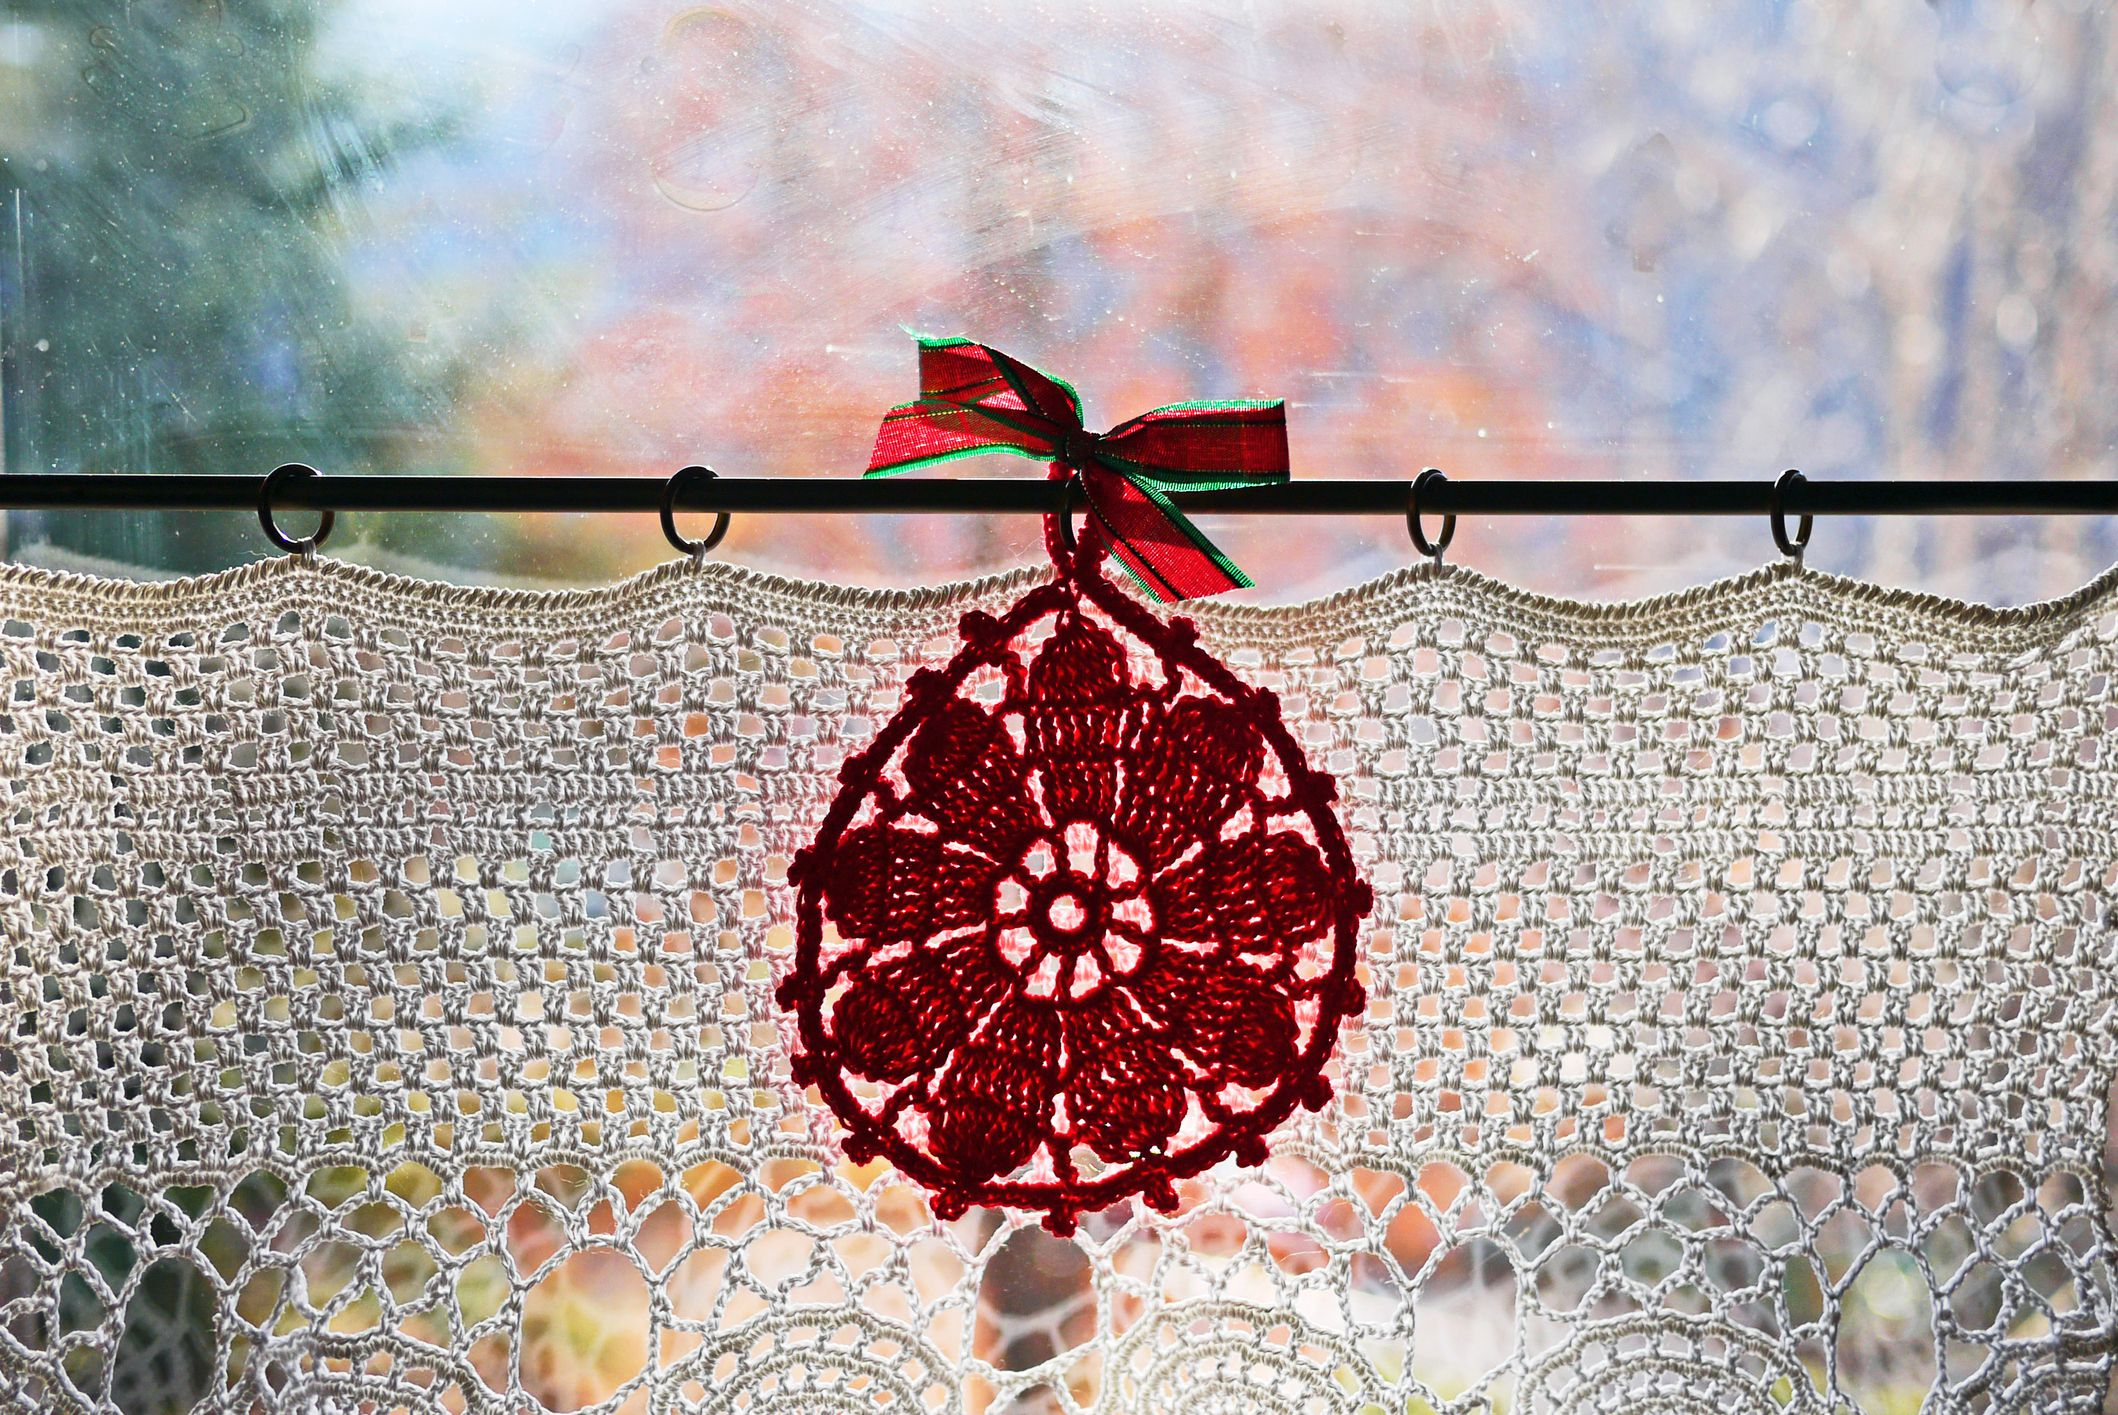 Crochet Curtain Pattern with Ornament